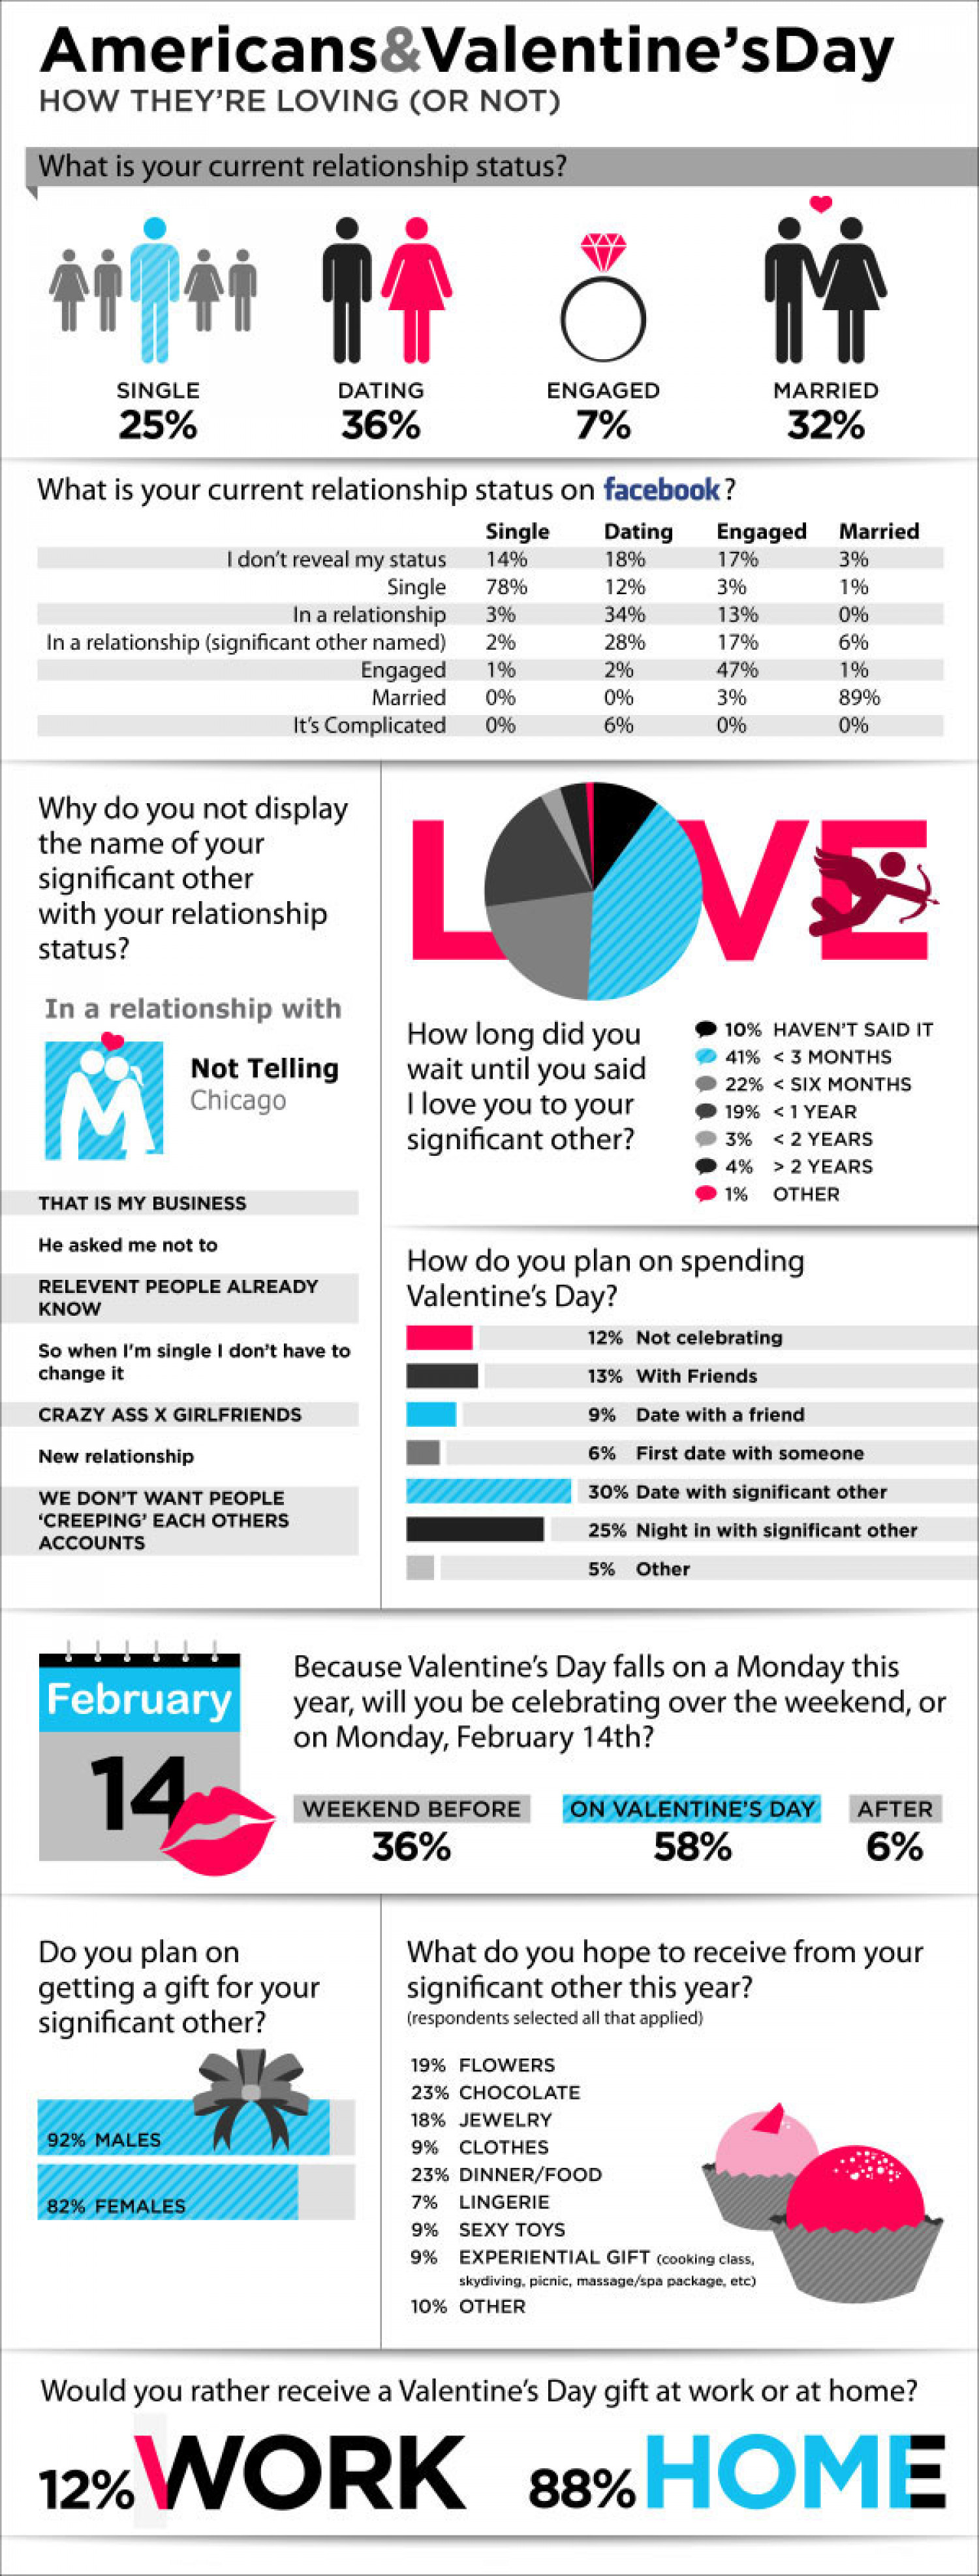 Americans and Valentine's Day Infographic